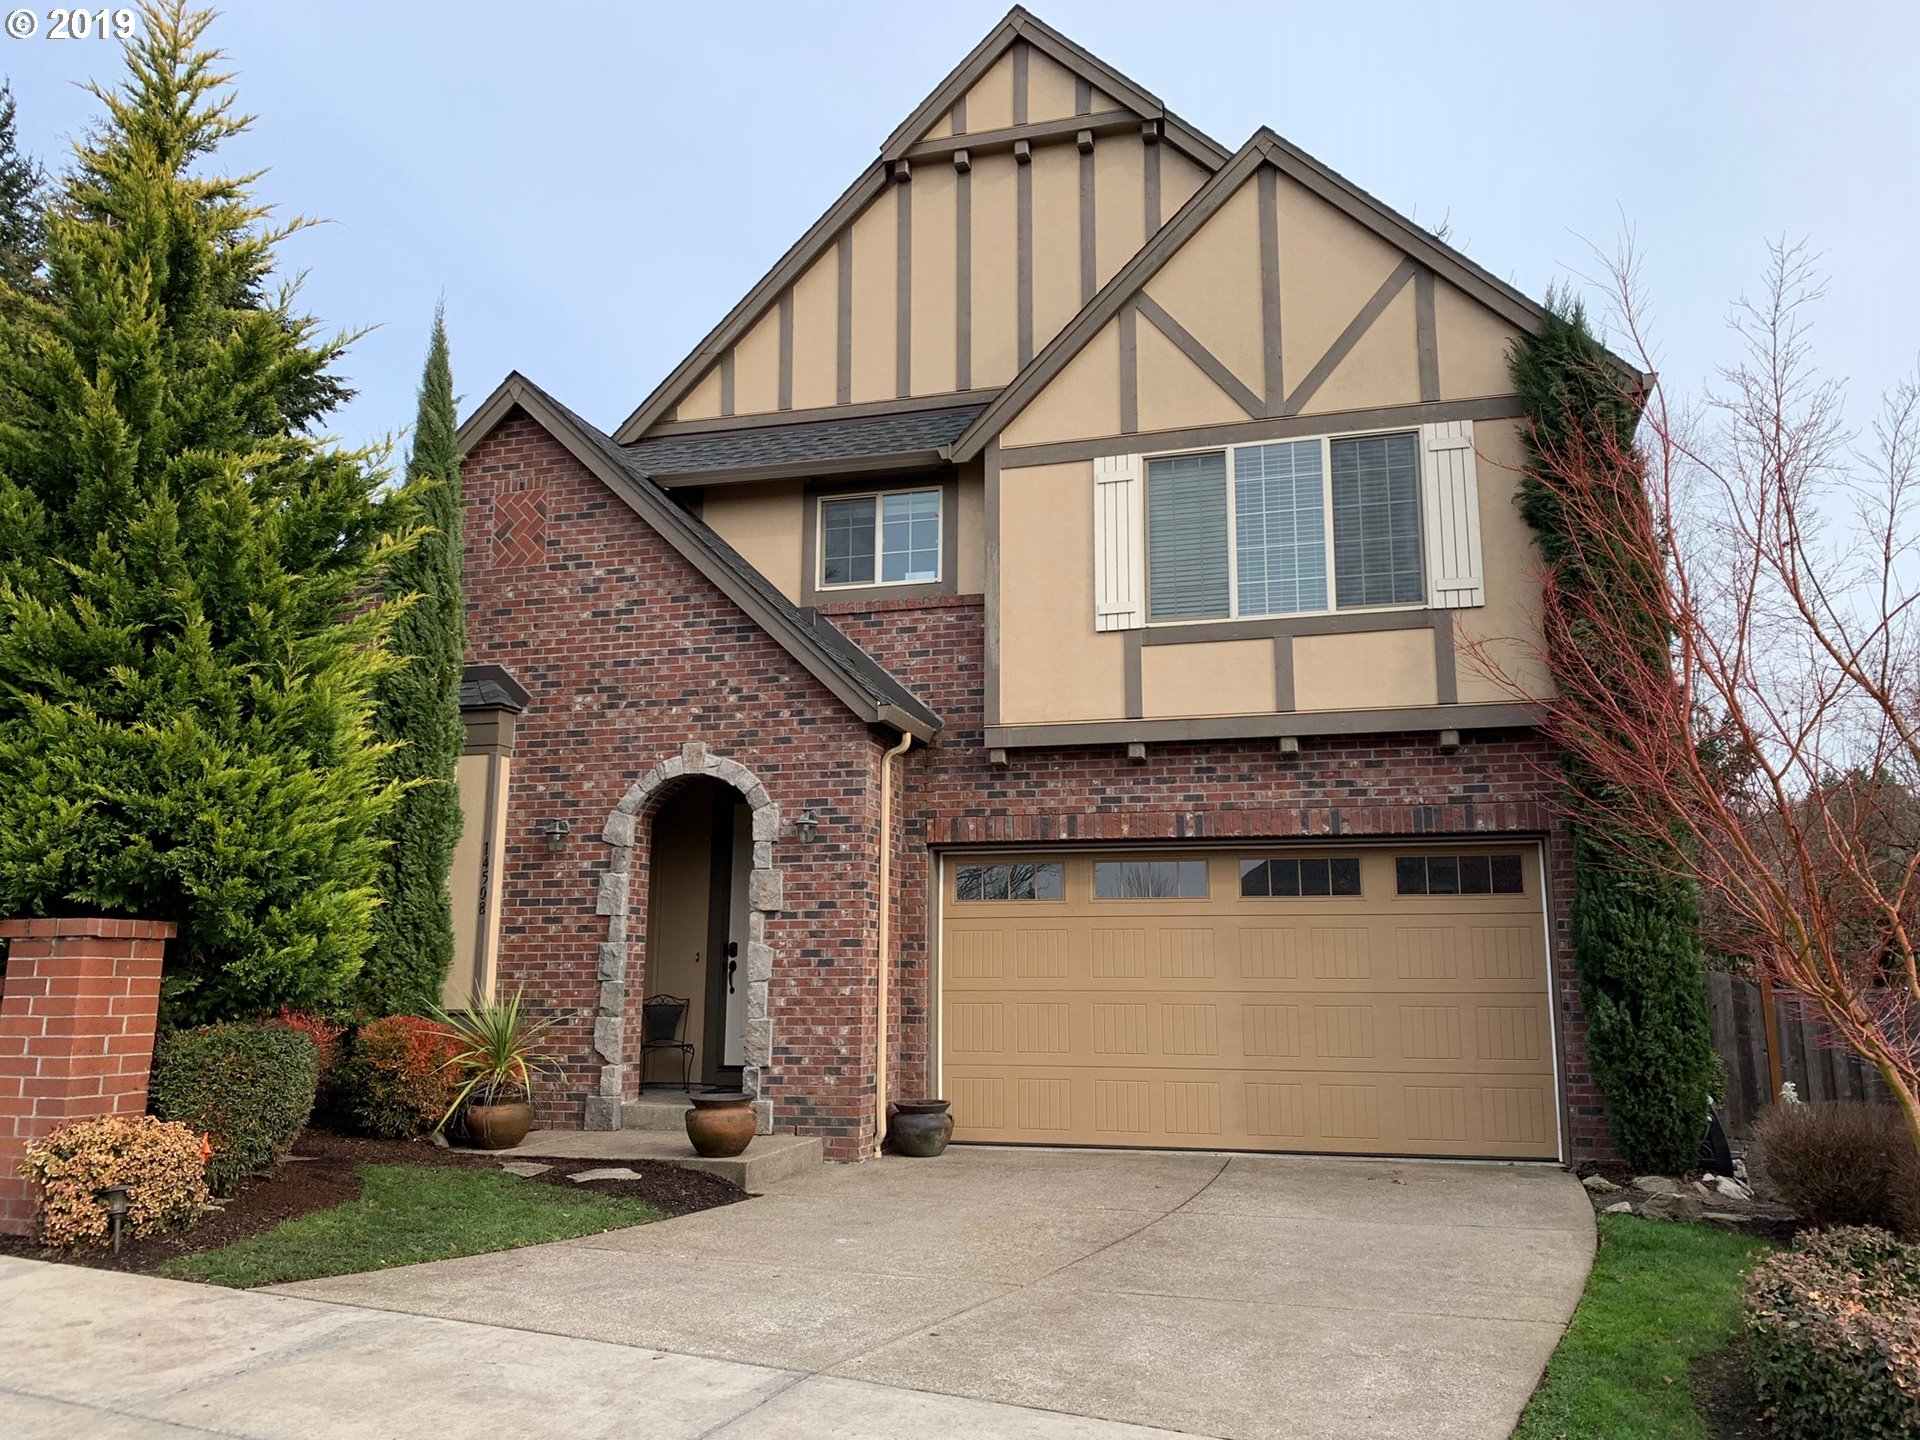 Photo of 14508 SW 164TH AVE Tigard OR 97224